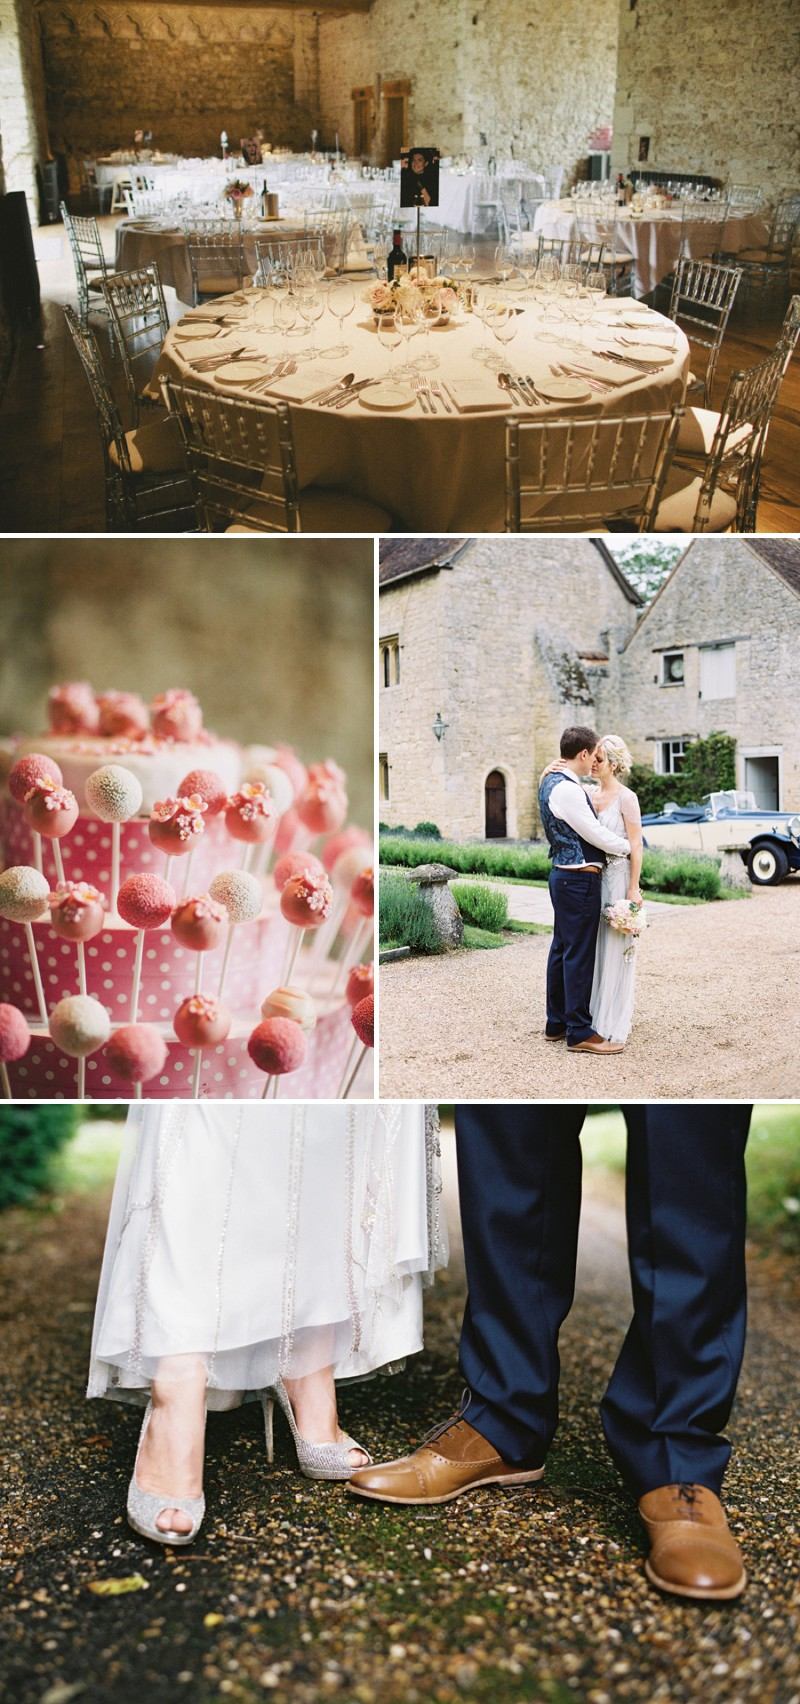 An English Country Garden And Art Deco Themed Wedding With A Jenny Packham Eden Dress At Notley Abbey And A Peony Bouquet._14